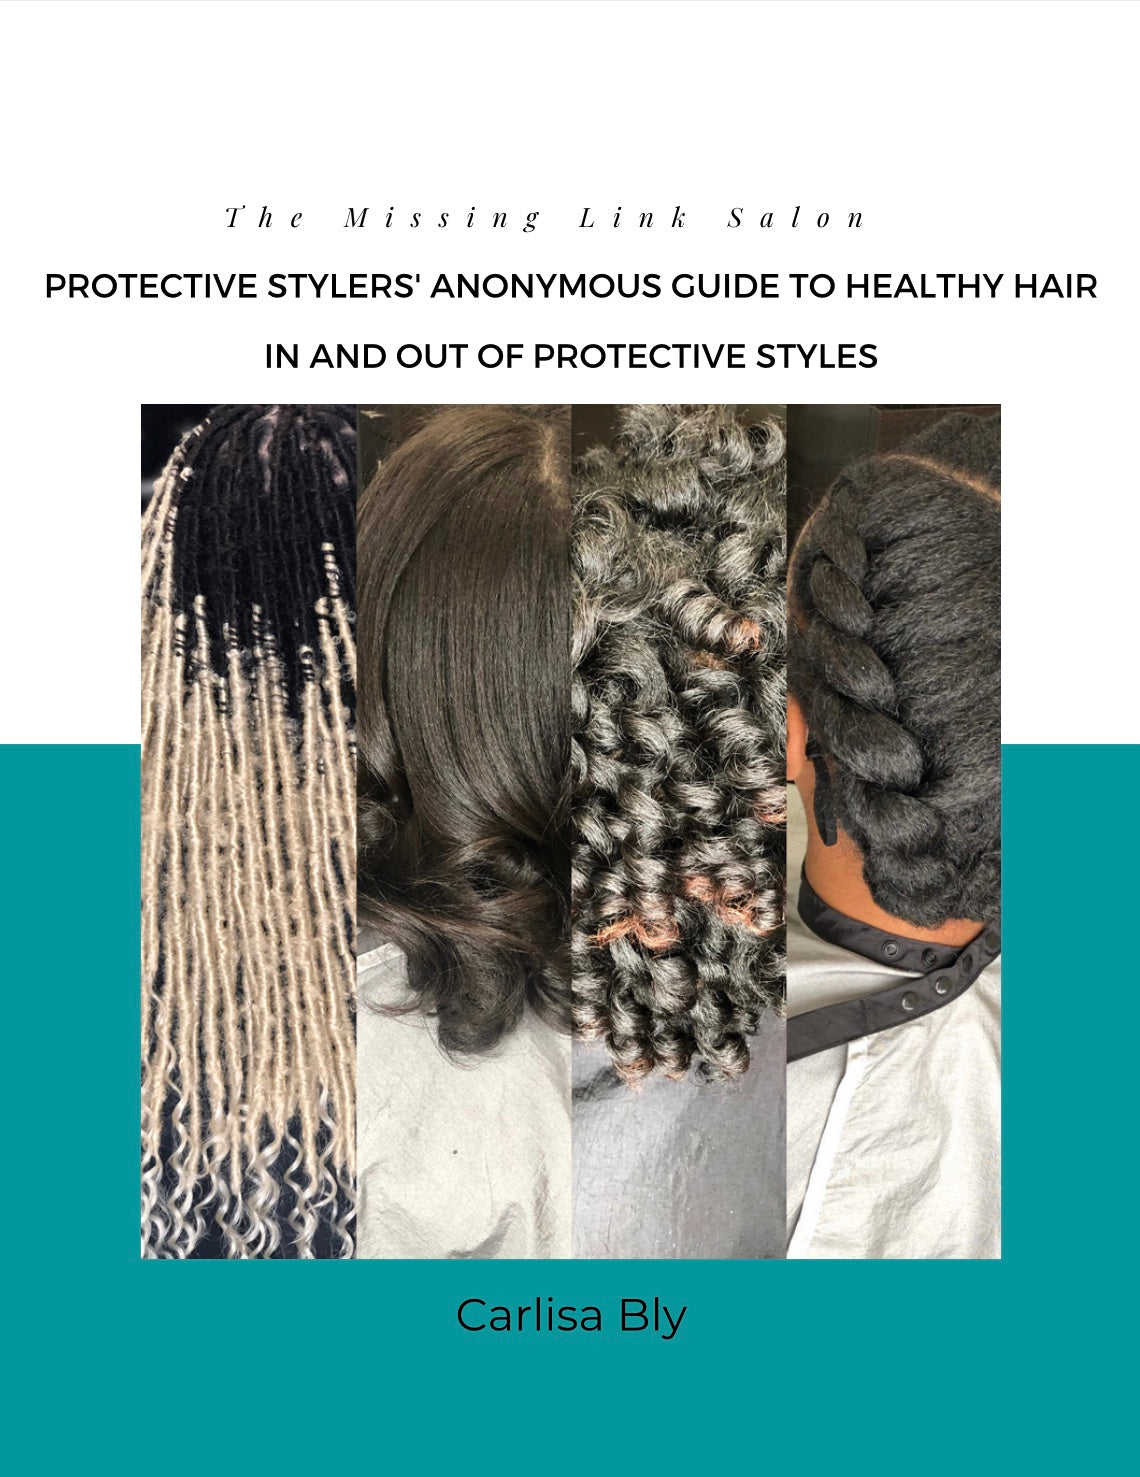 Protective Stylers Anonymous guide to healthy hair